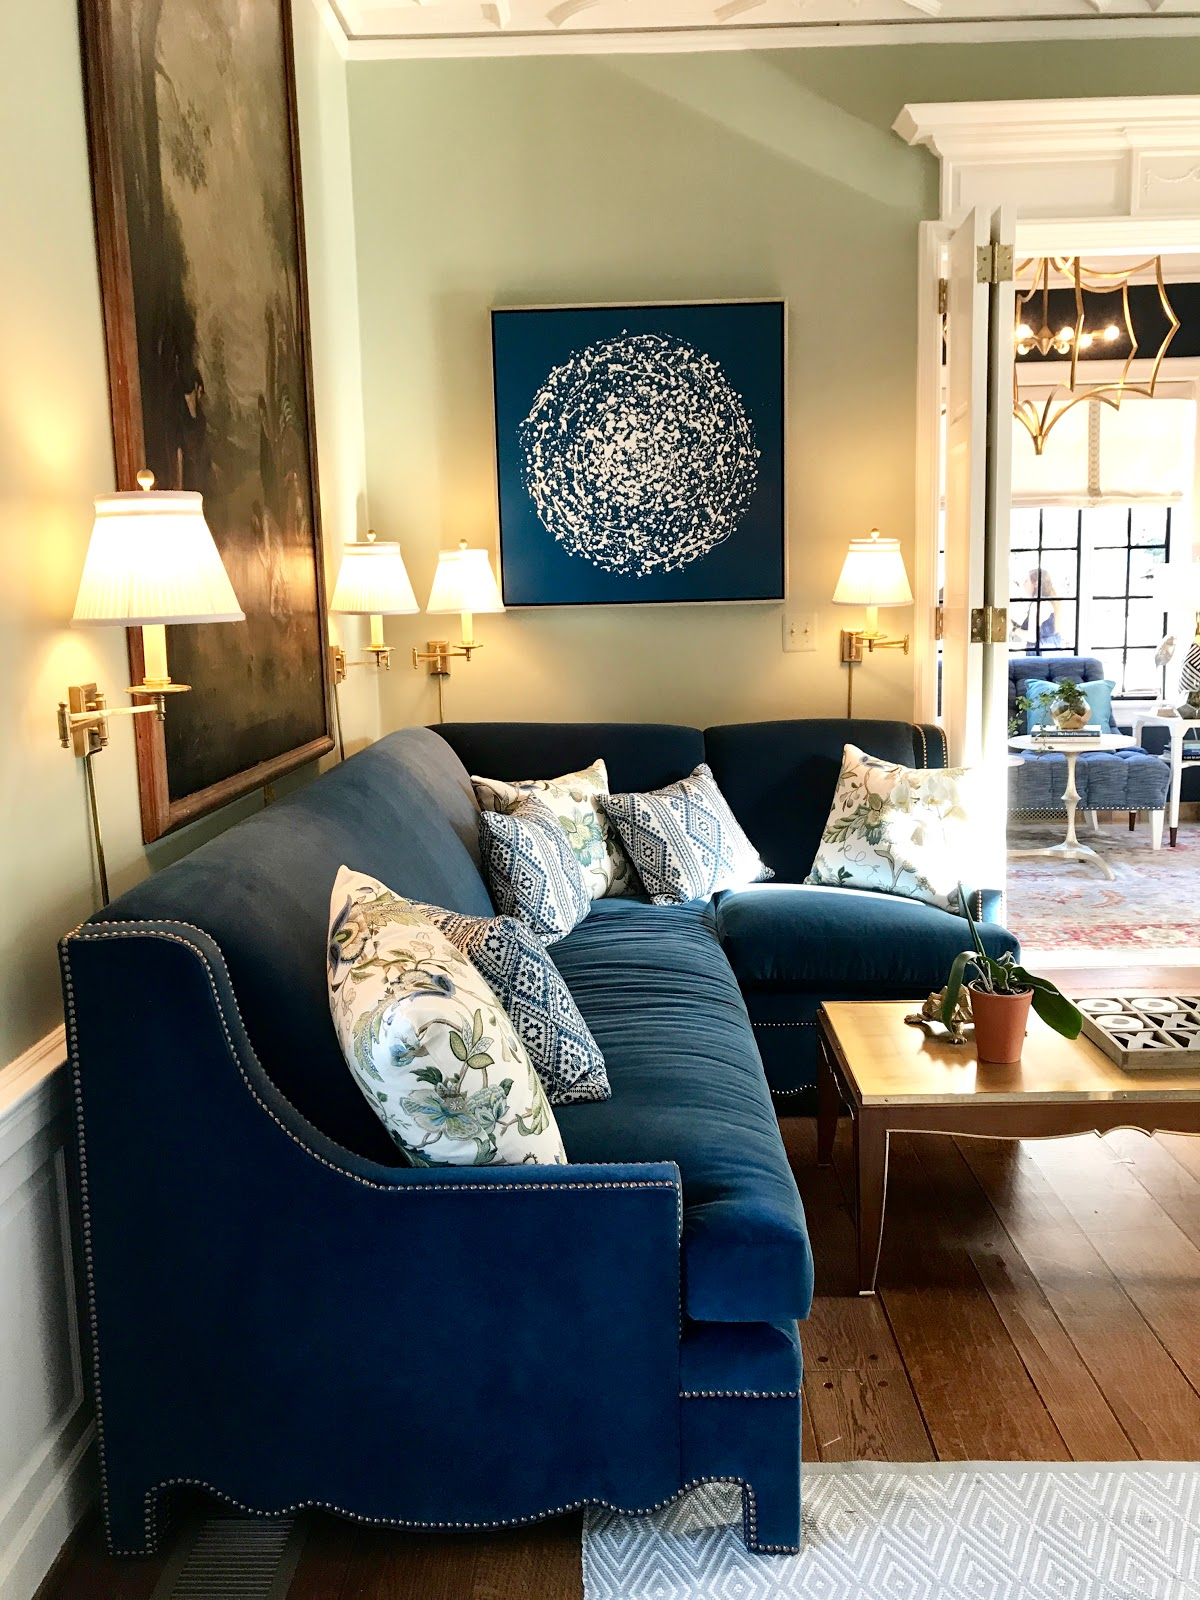 THE JULIAN PRICE SHOWHOUSE - design indulgence